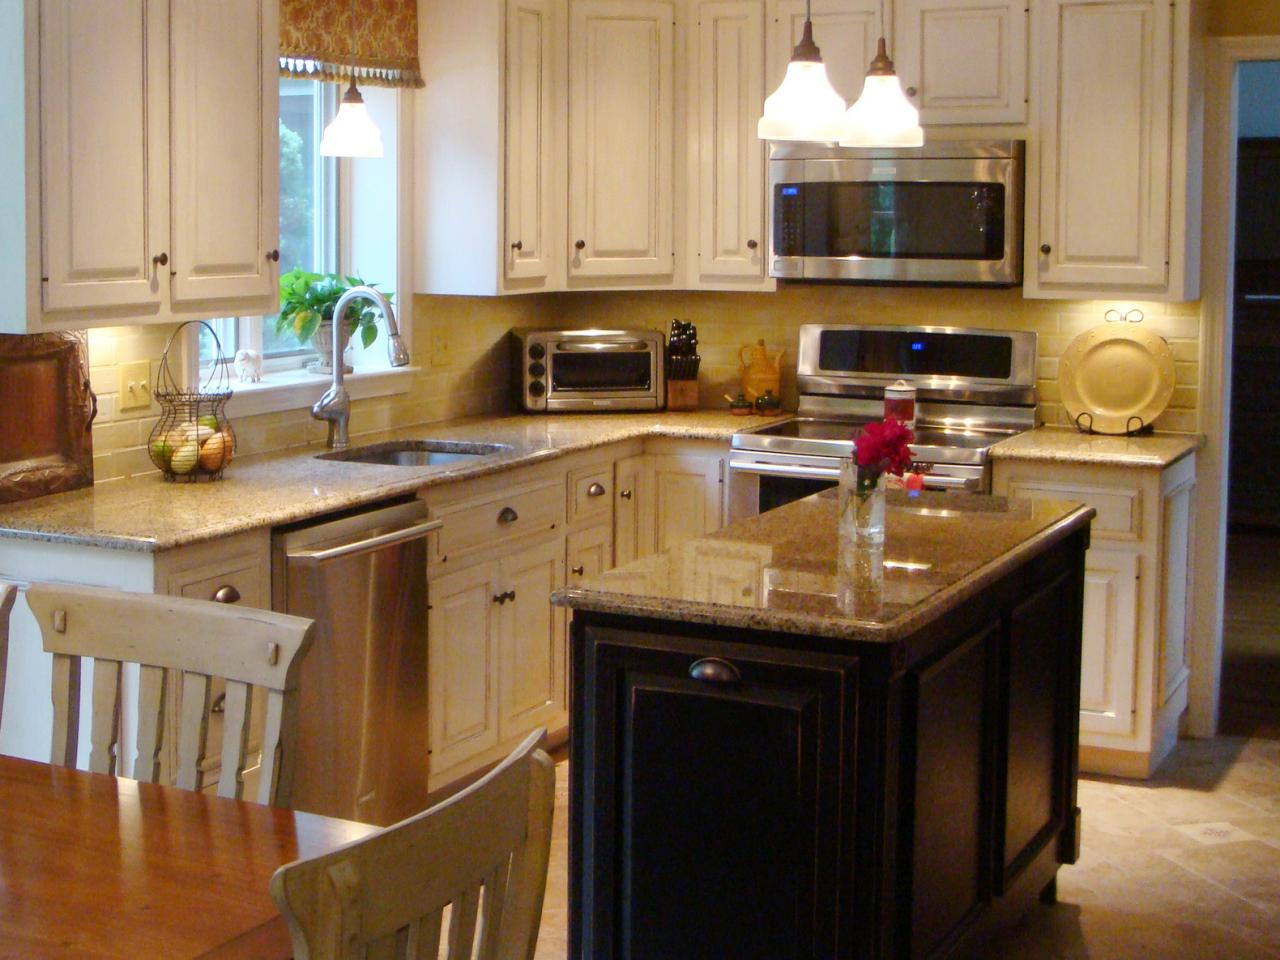 Small kitchen design ideas with island the new kitchen for Small kitchen layout with island